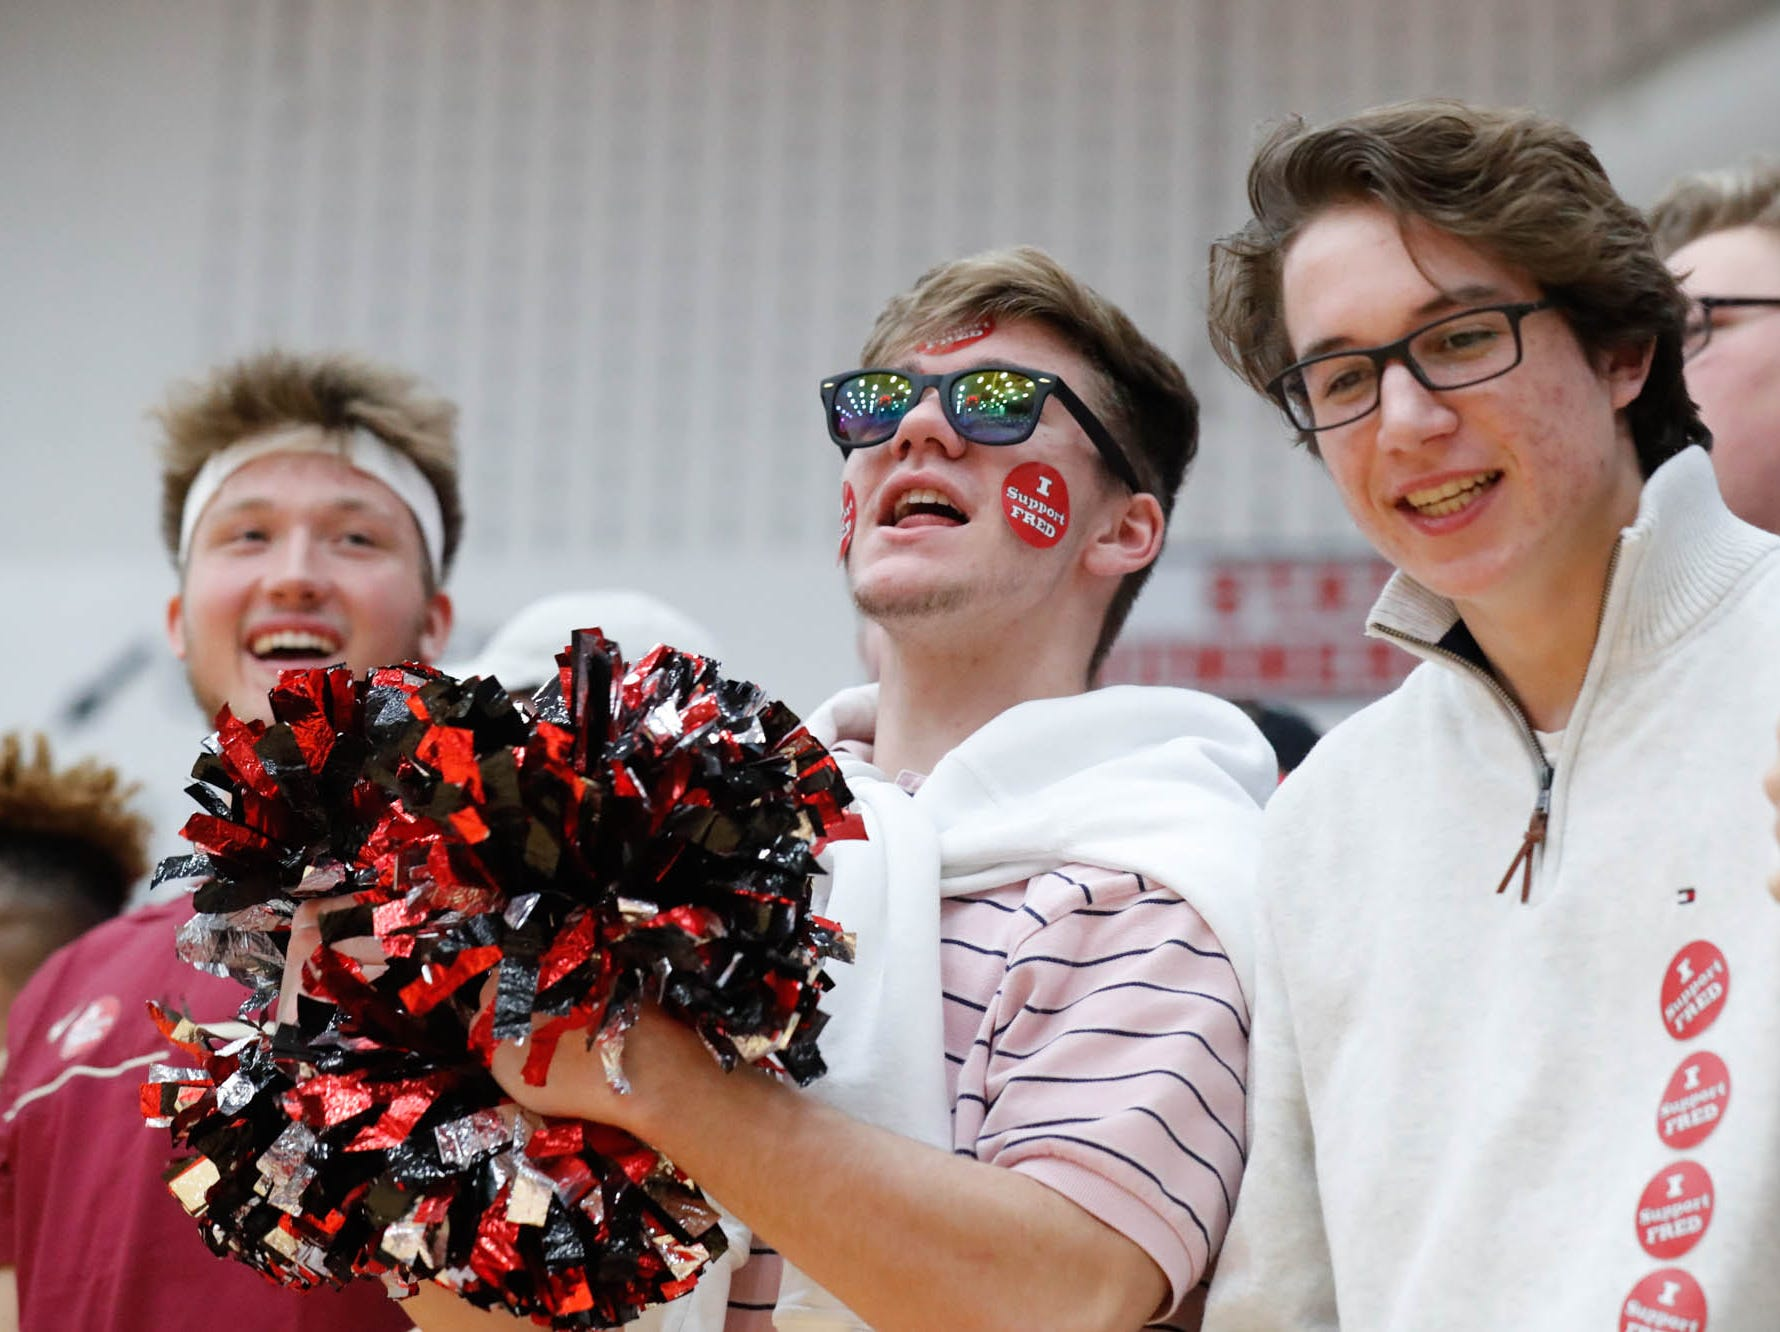 Center Grove students cheer on their team during a game between Center Grove High School and Carmel High School, held at Center Grove on on Friday, Jan. 4, 2019.